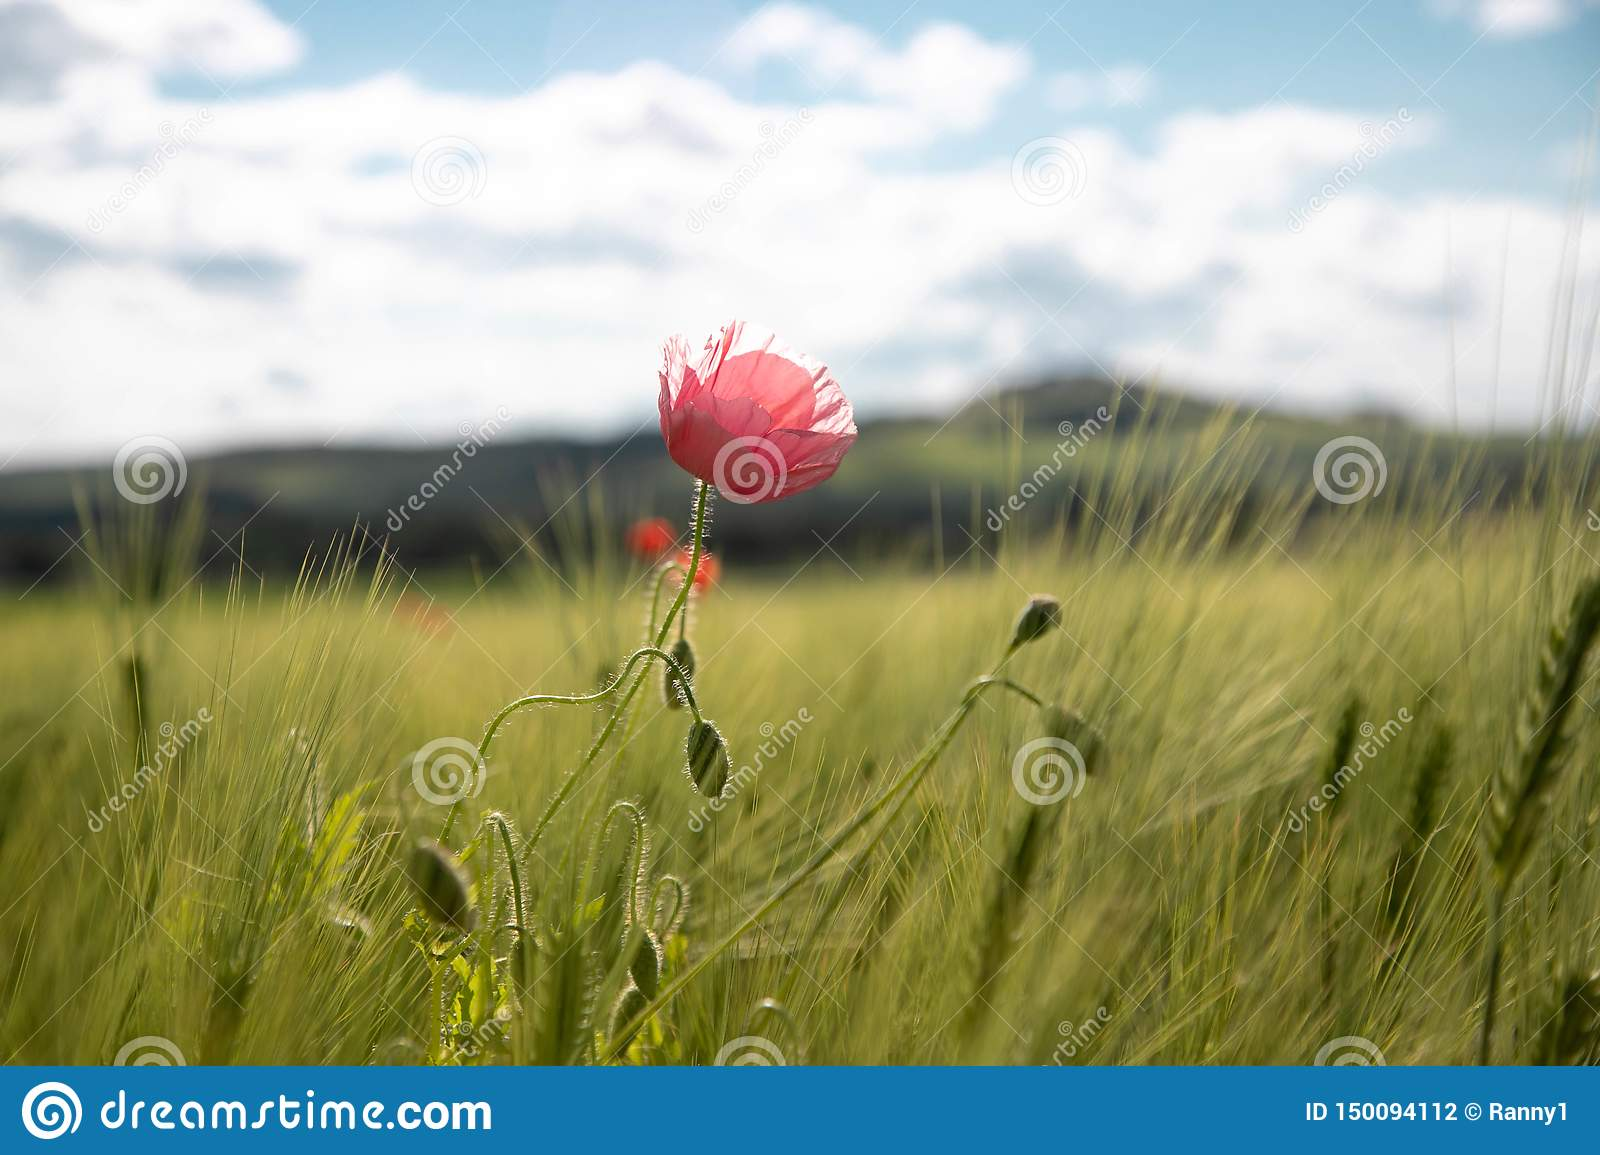 A lonely pink poppy flower in a springtime green field of rye ears and wheat against a blue sky with clouds on a sunny day